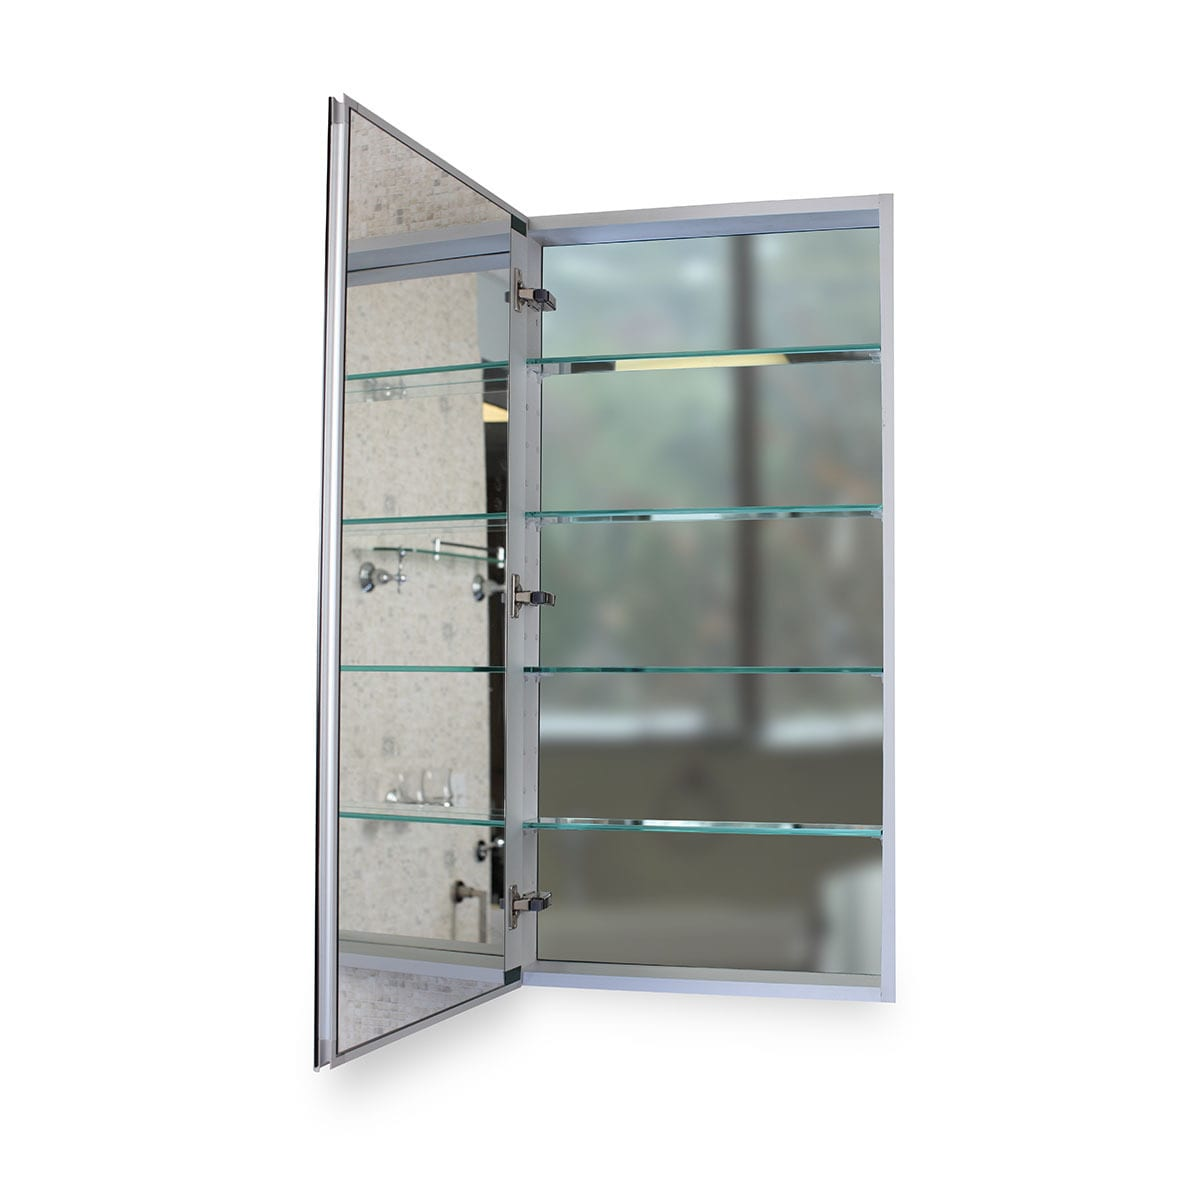 Shop Flawless 24x40 Medicine Cabinet With Blum Soft Close Door Hinges    Mirror/Aluminum   Free Shipping Today   Overstock.com   11416603